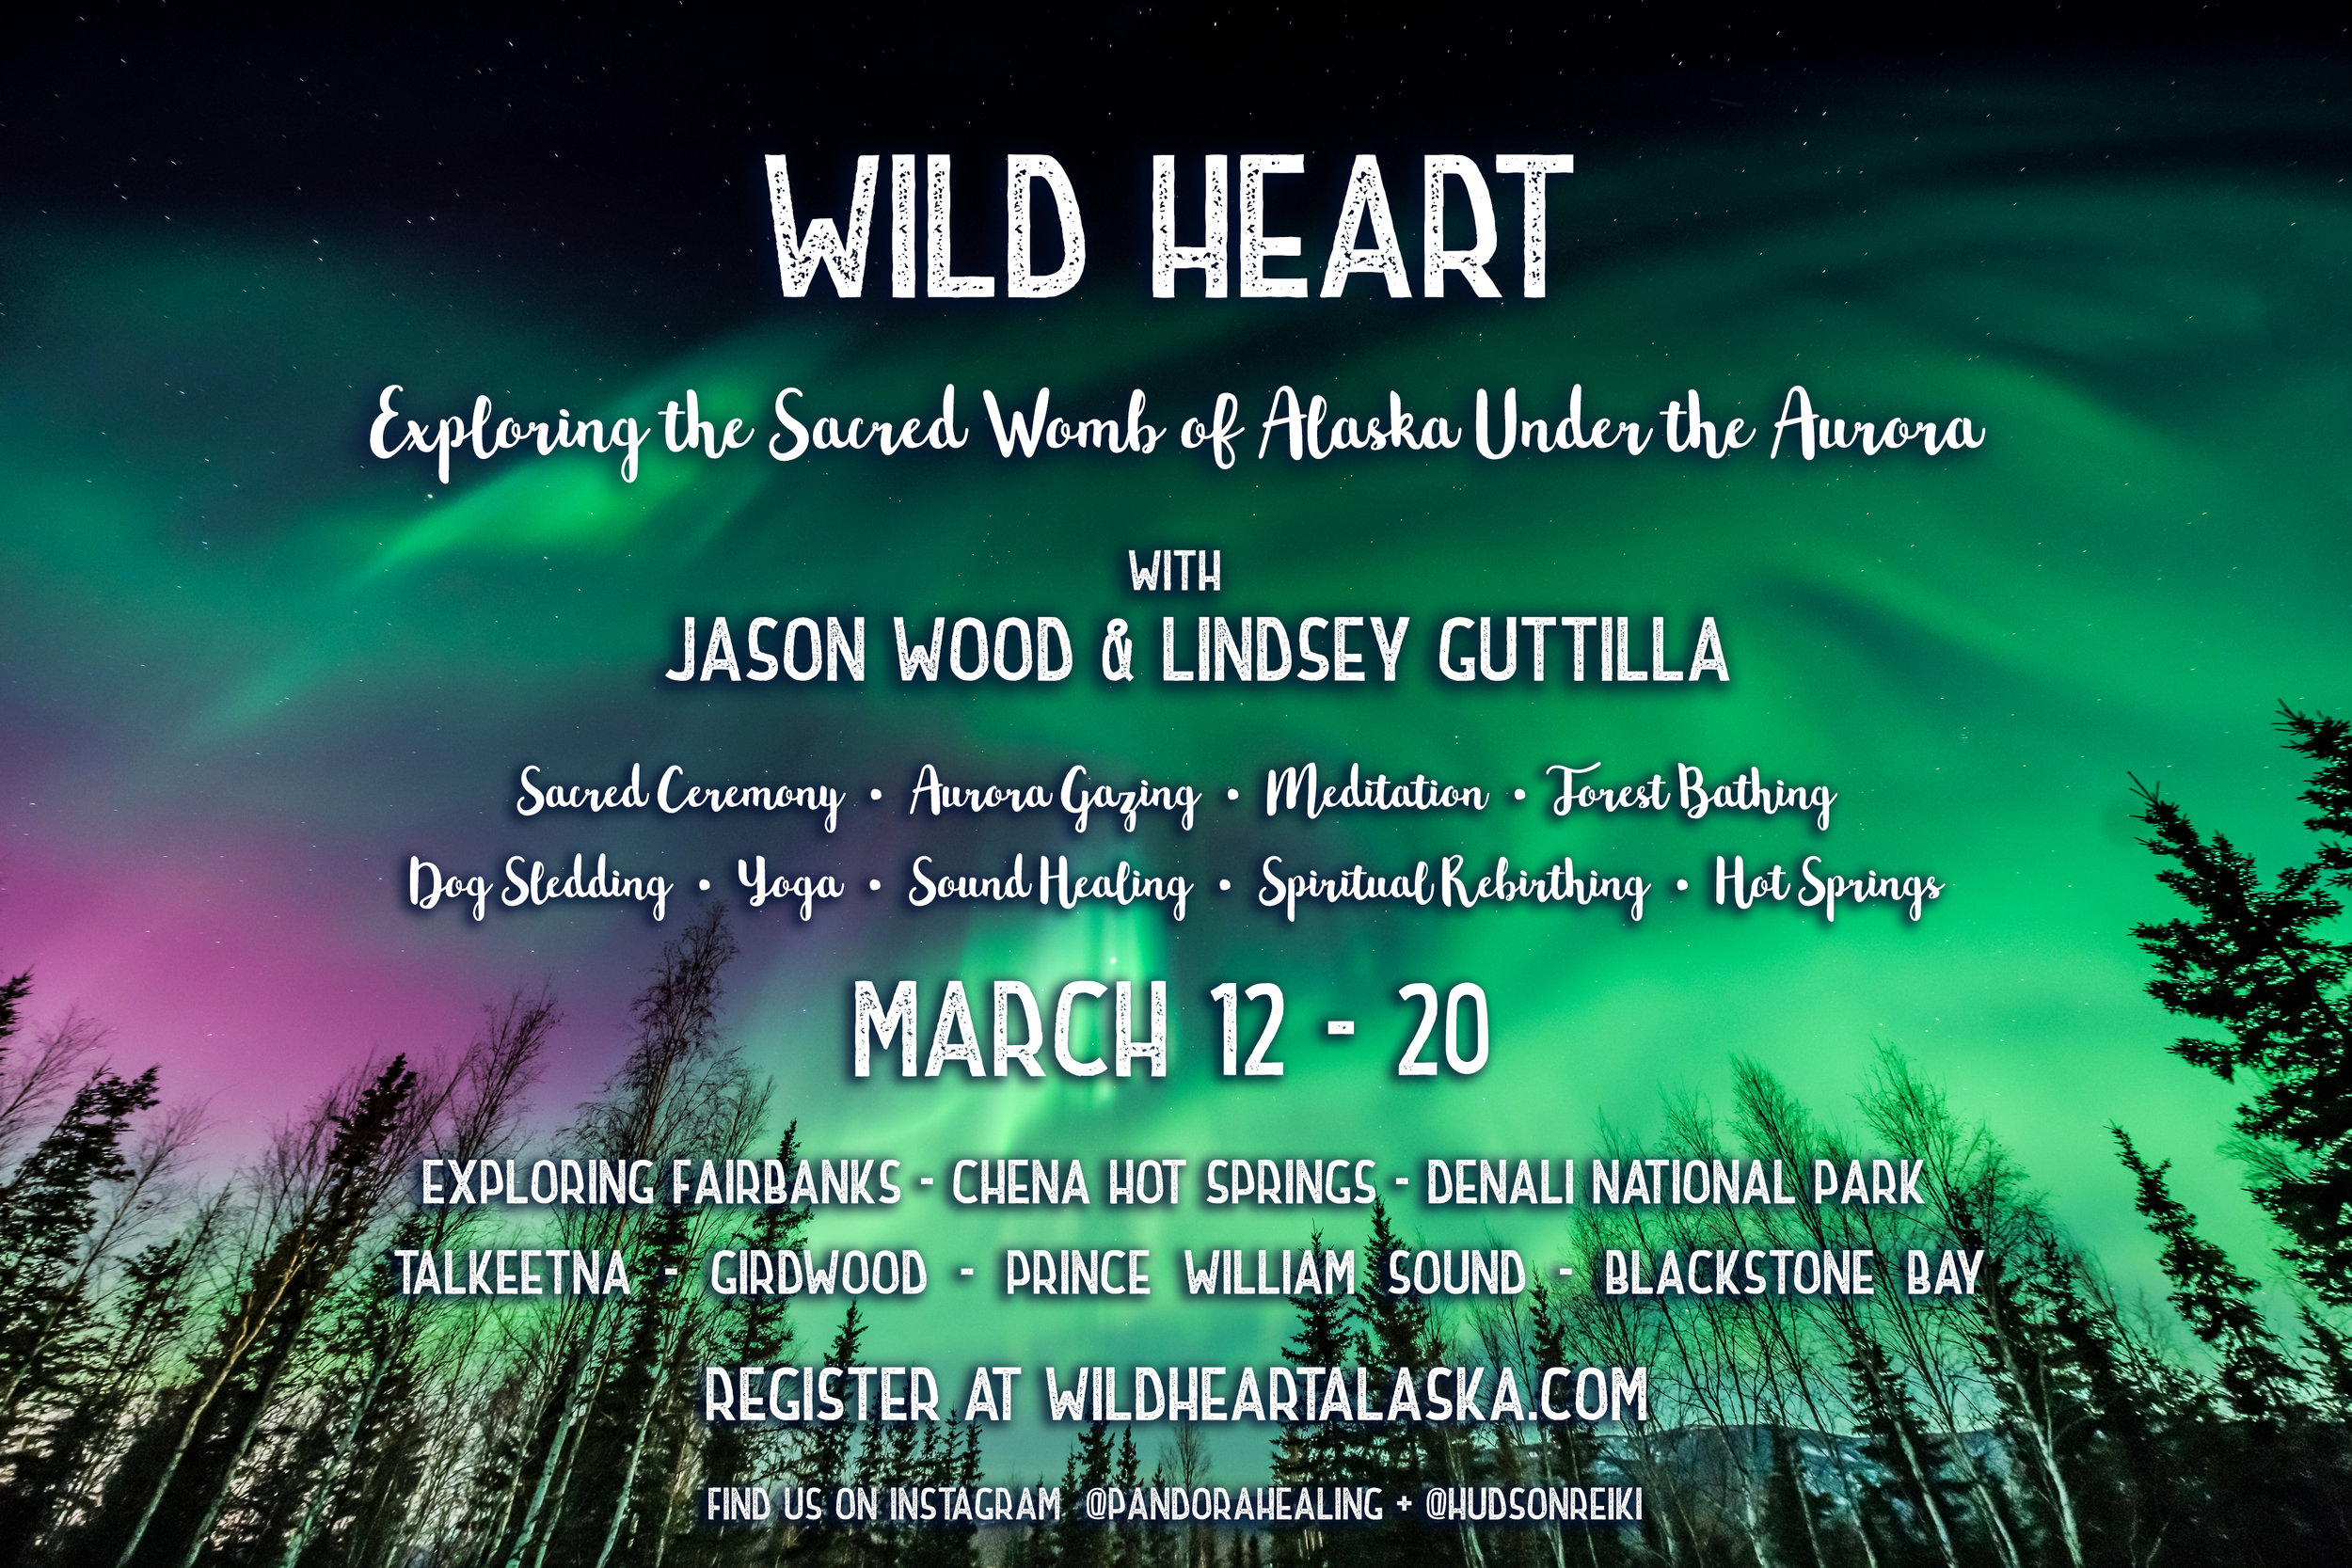 Wild Heart: Exploring the Sacred Womb of Alaska Under the Aurora - withJason Wood + Lindsey GuttillaMarch 12 - 20A unique opportunity for ceremony, working with the energies of the Aurora and sacred land of Alaska. We are so honored to offer ceremonies, meditation, forest bathing, indigenous ritual, bead making, dog sledding, hot springs and travel throughout some of the most breathtaking and spiritual sights in Alaska. Join our Wild Heart mailing list for more details.